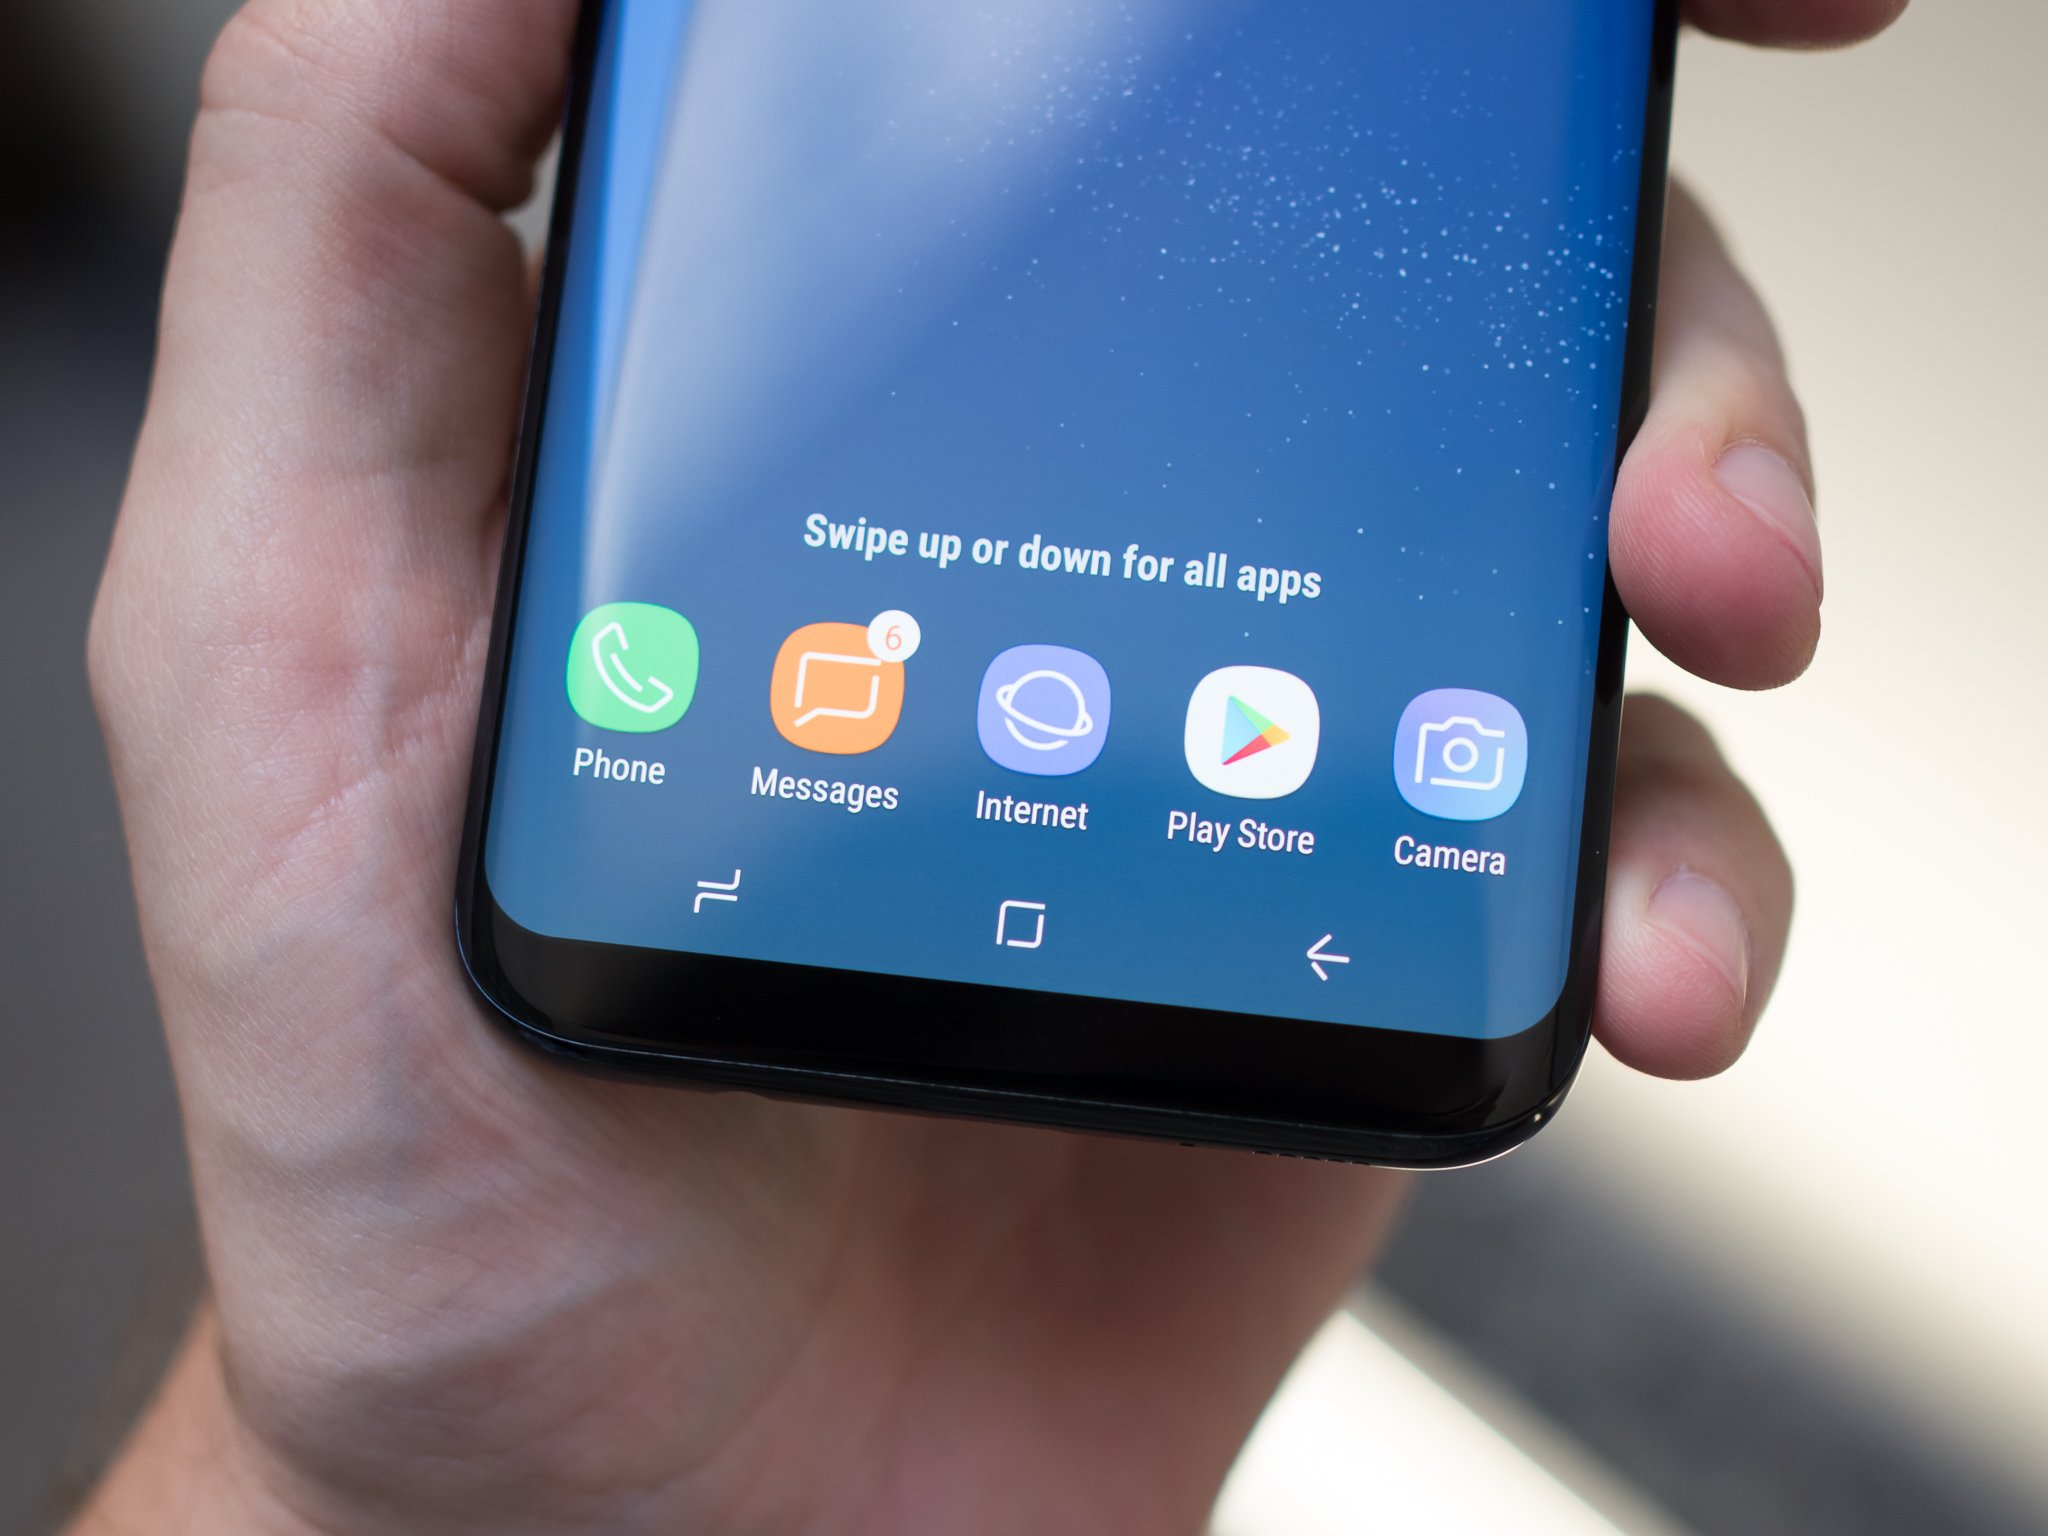 Samsung Screen How To Restore The App Drawer Button On The Galaxy S8 Or Disable